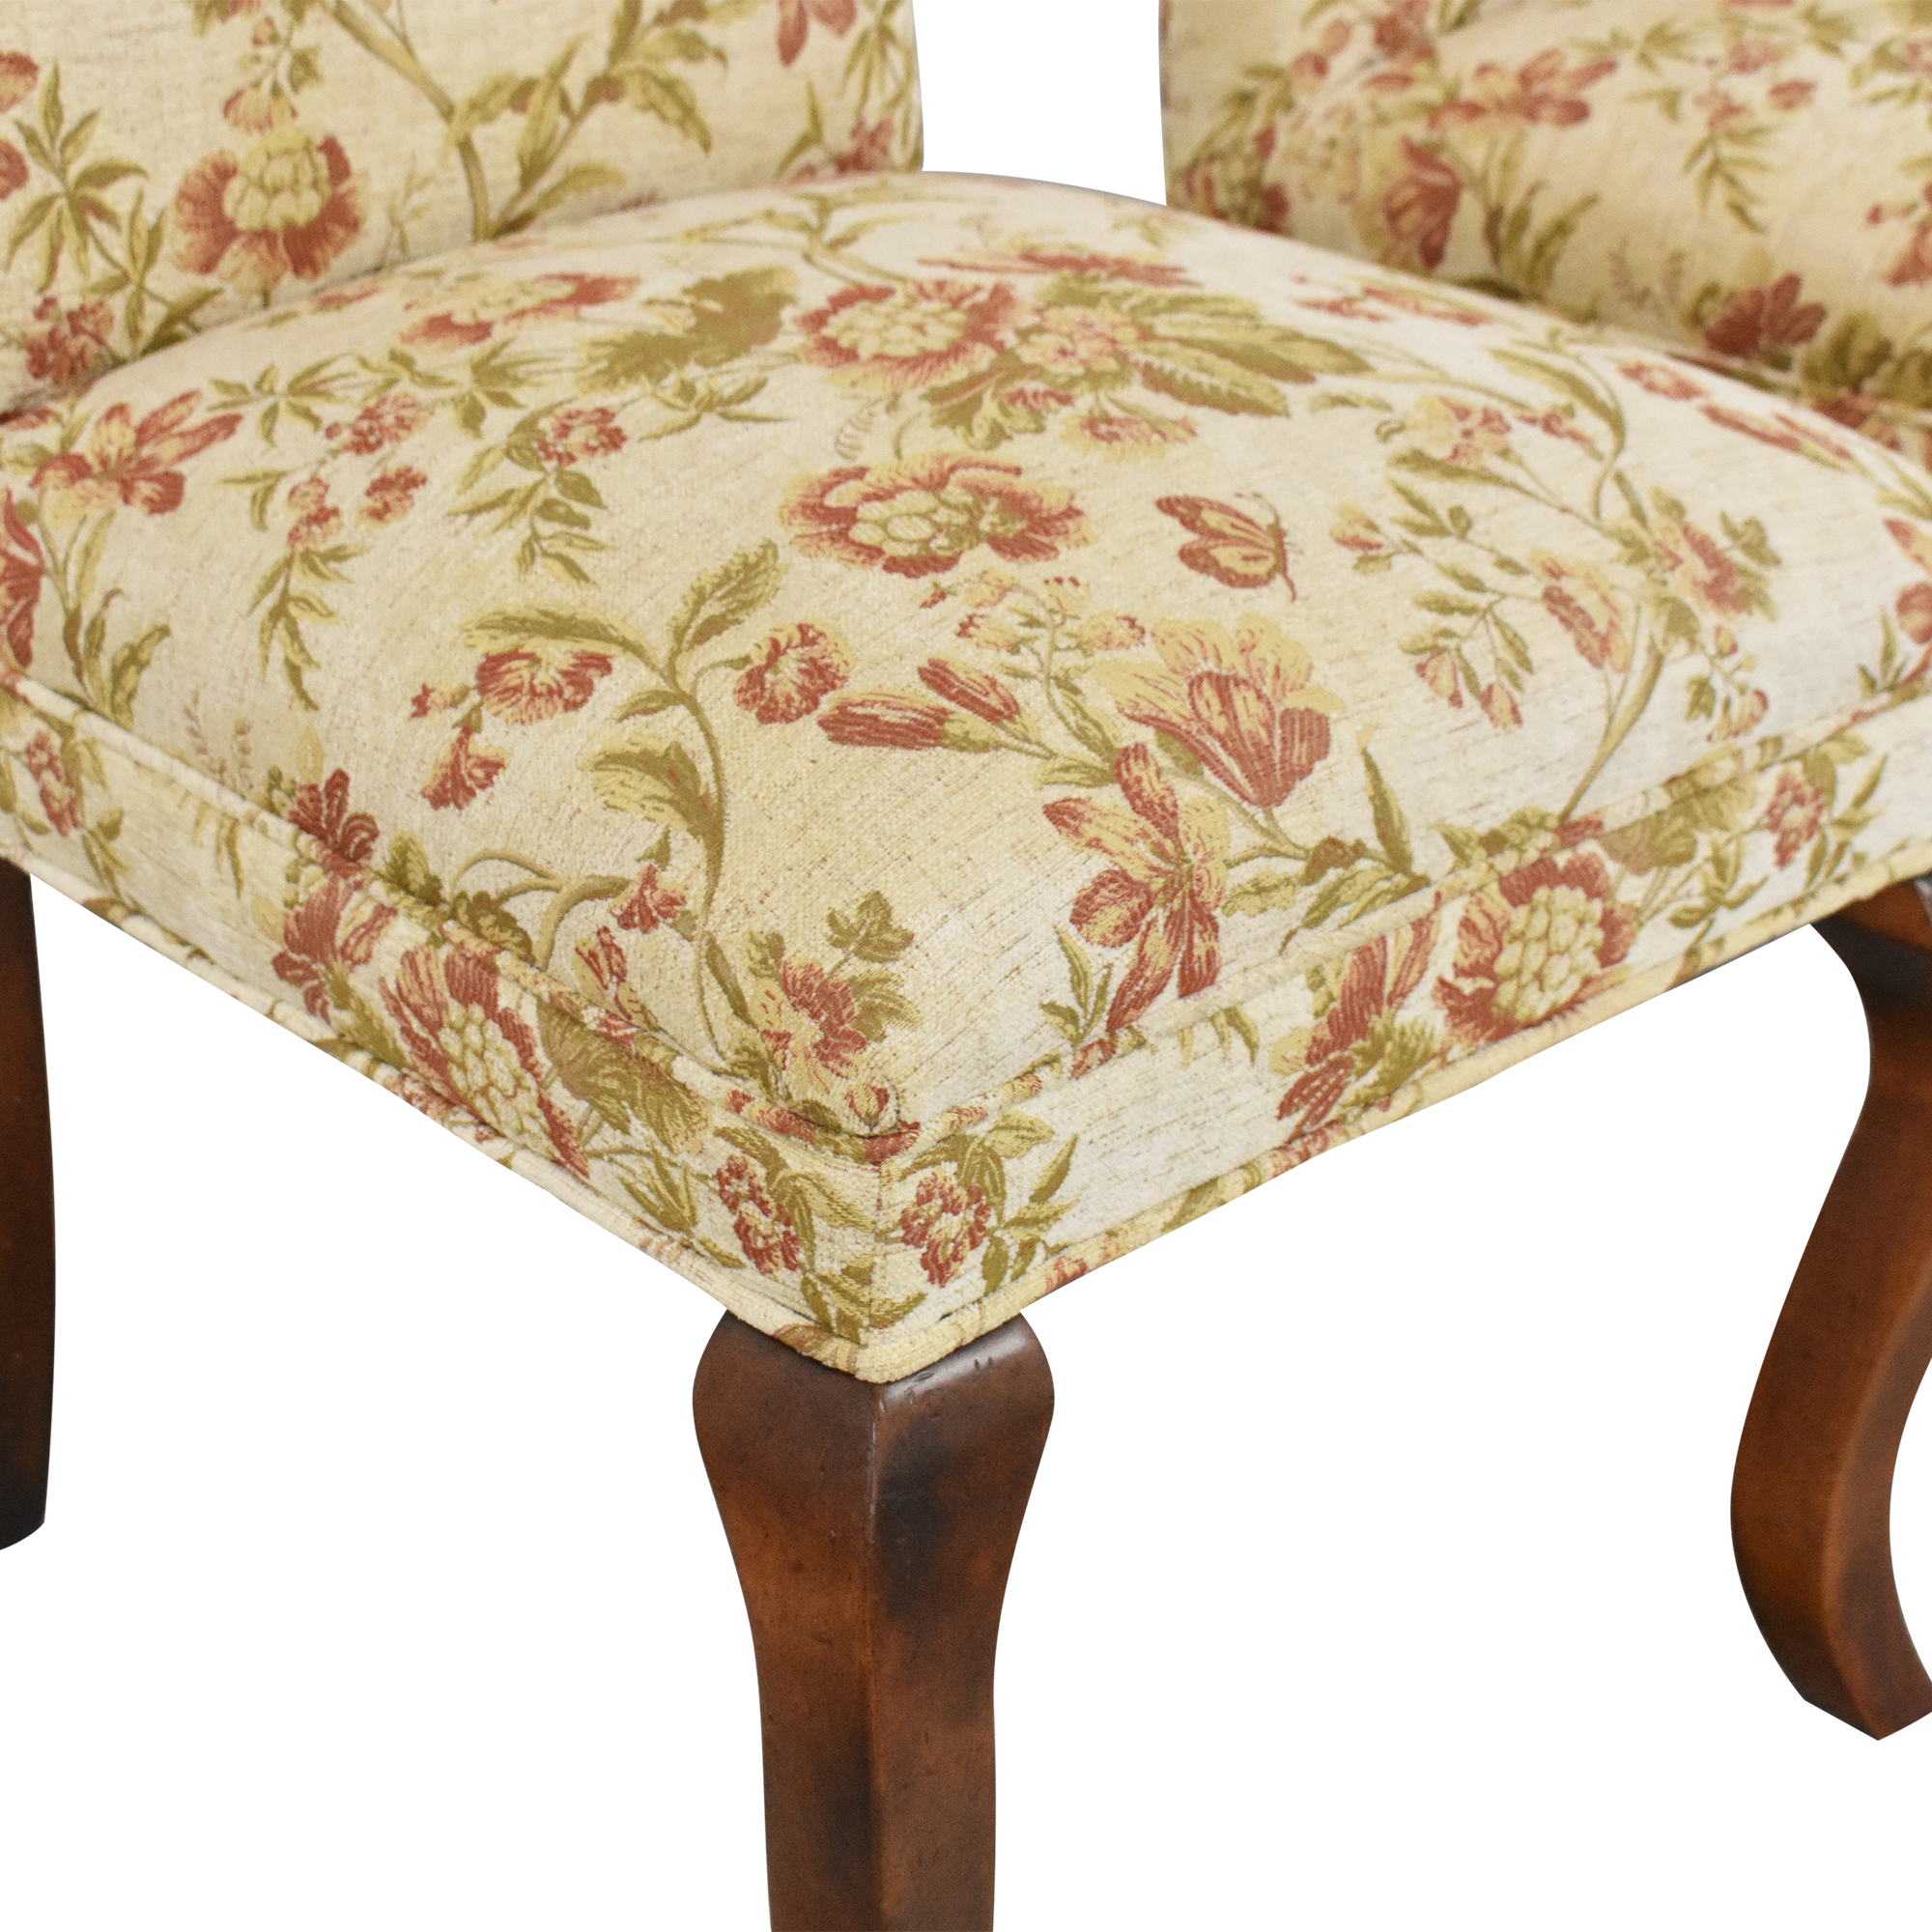 Queen Anne Upholstered Dining Chairs sale